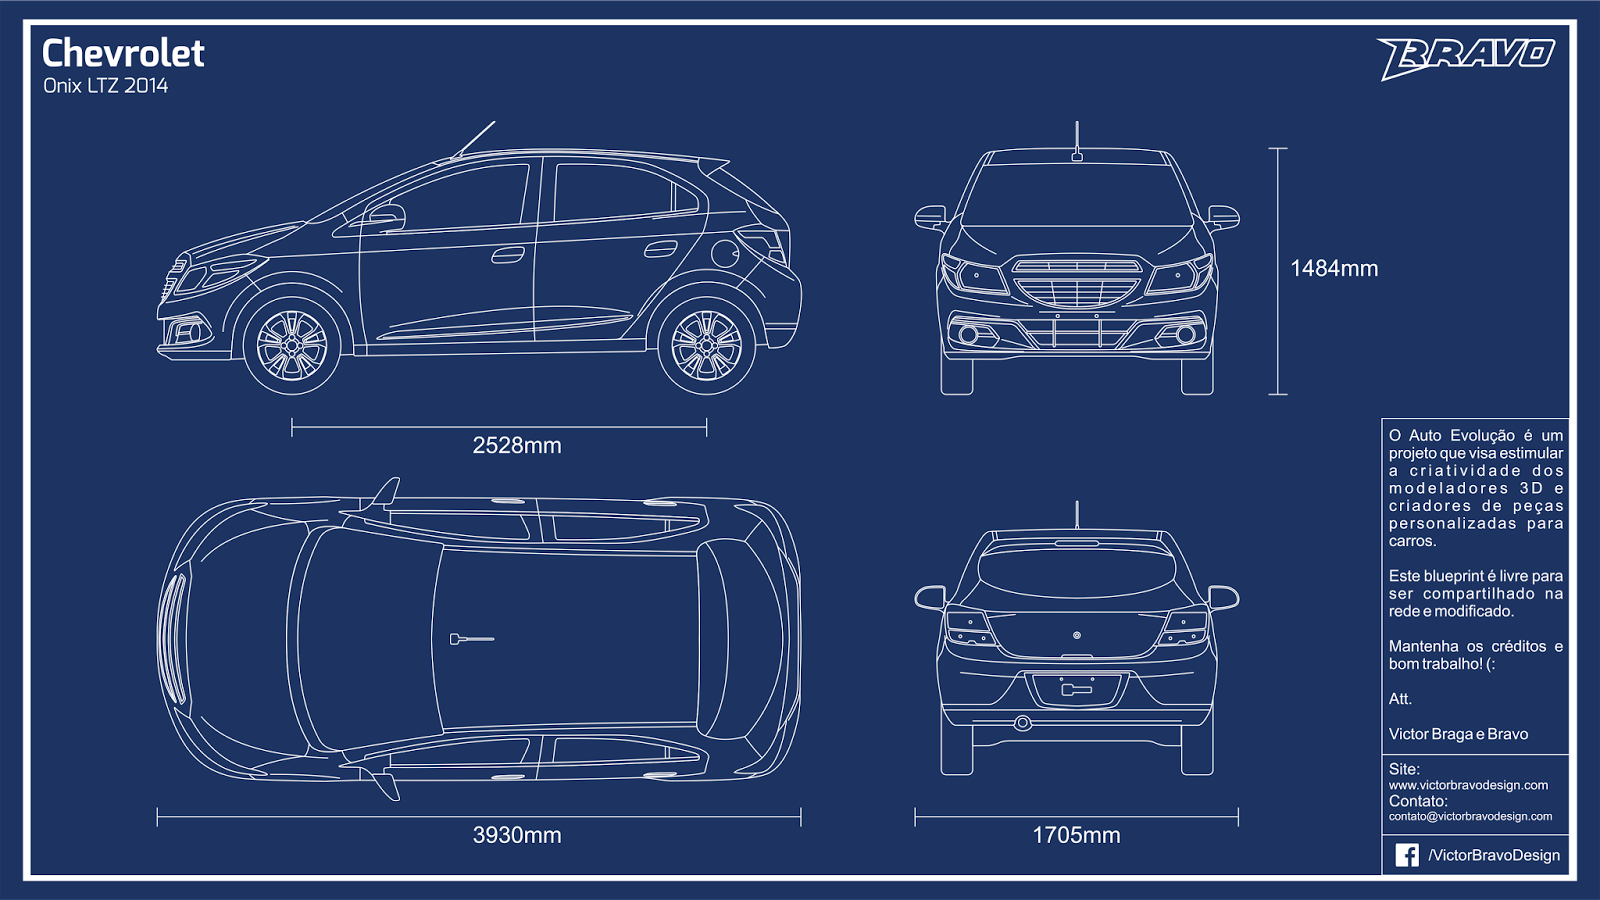 Imagem mostrando o blueprint do Chevrolet Onix LTZ 2014